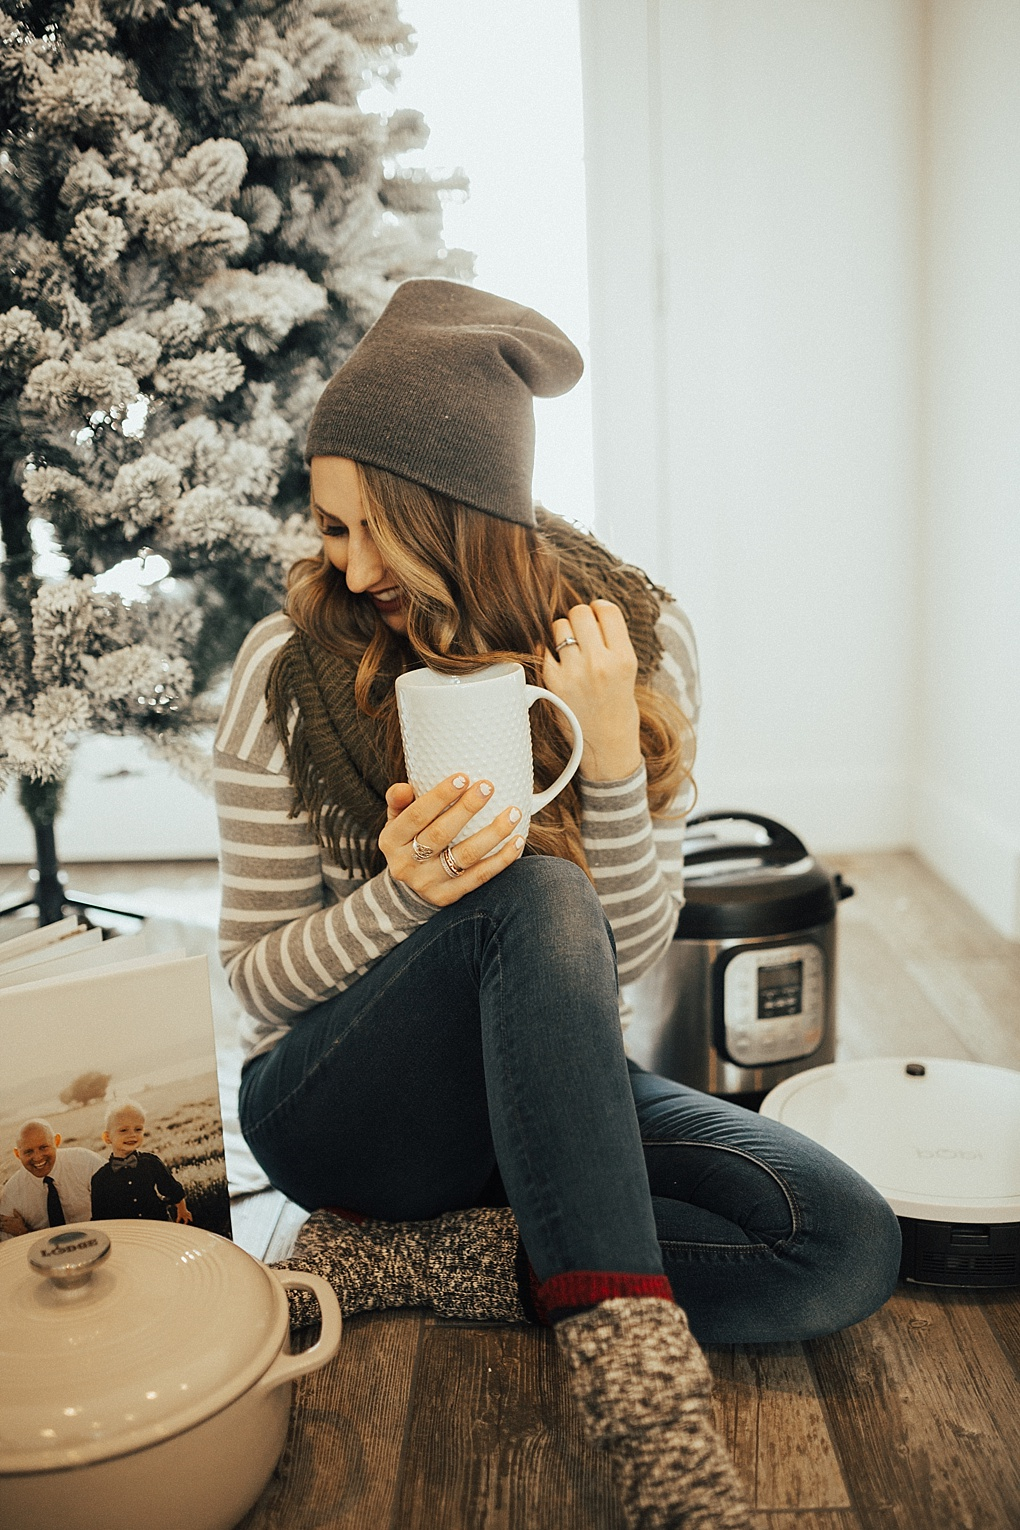 5 Awesome Parents Gift Ideas They'll Love by Utah lifestyle blogger Dani Marie